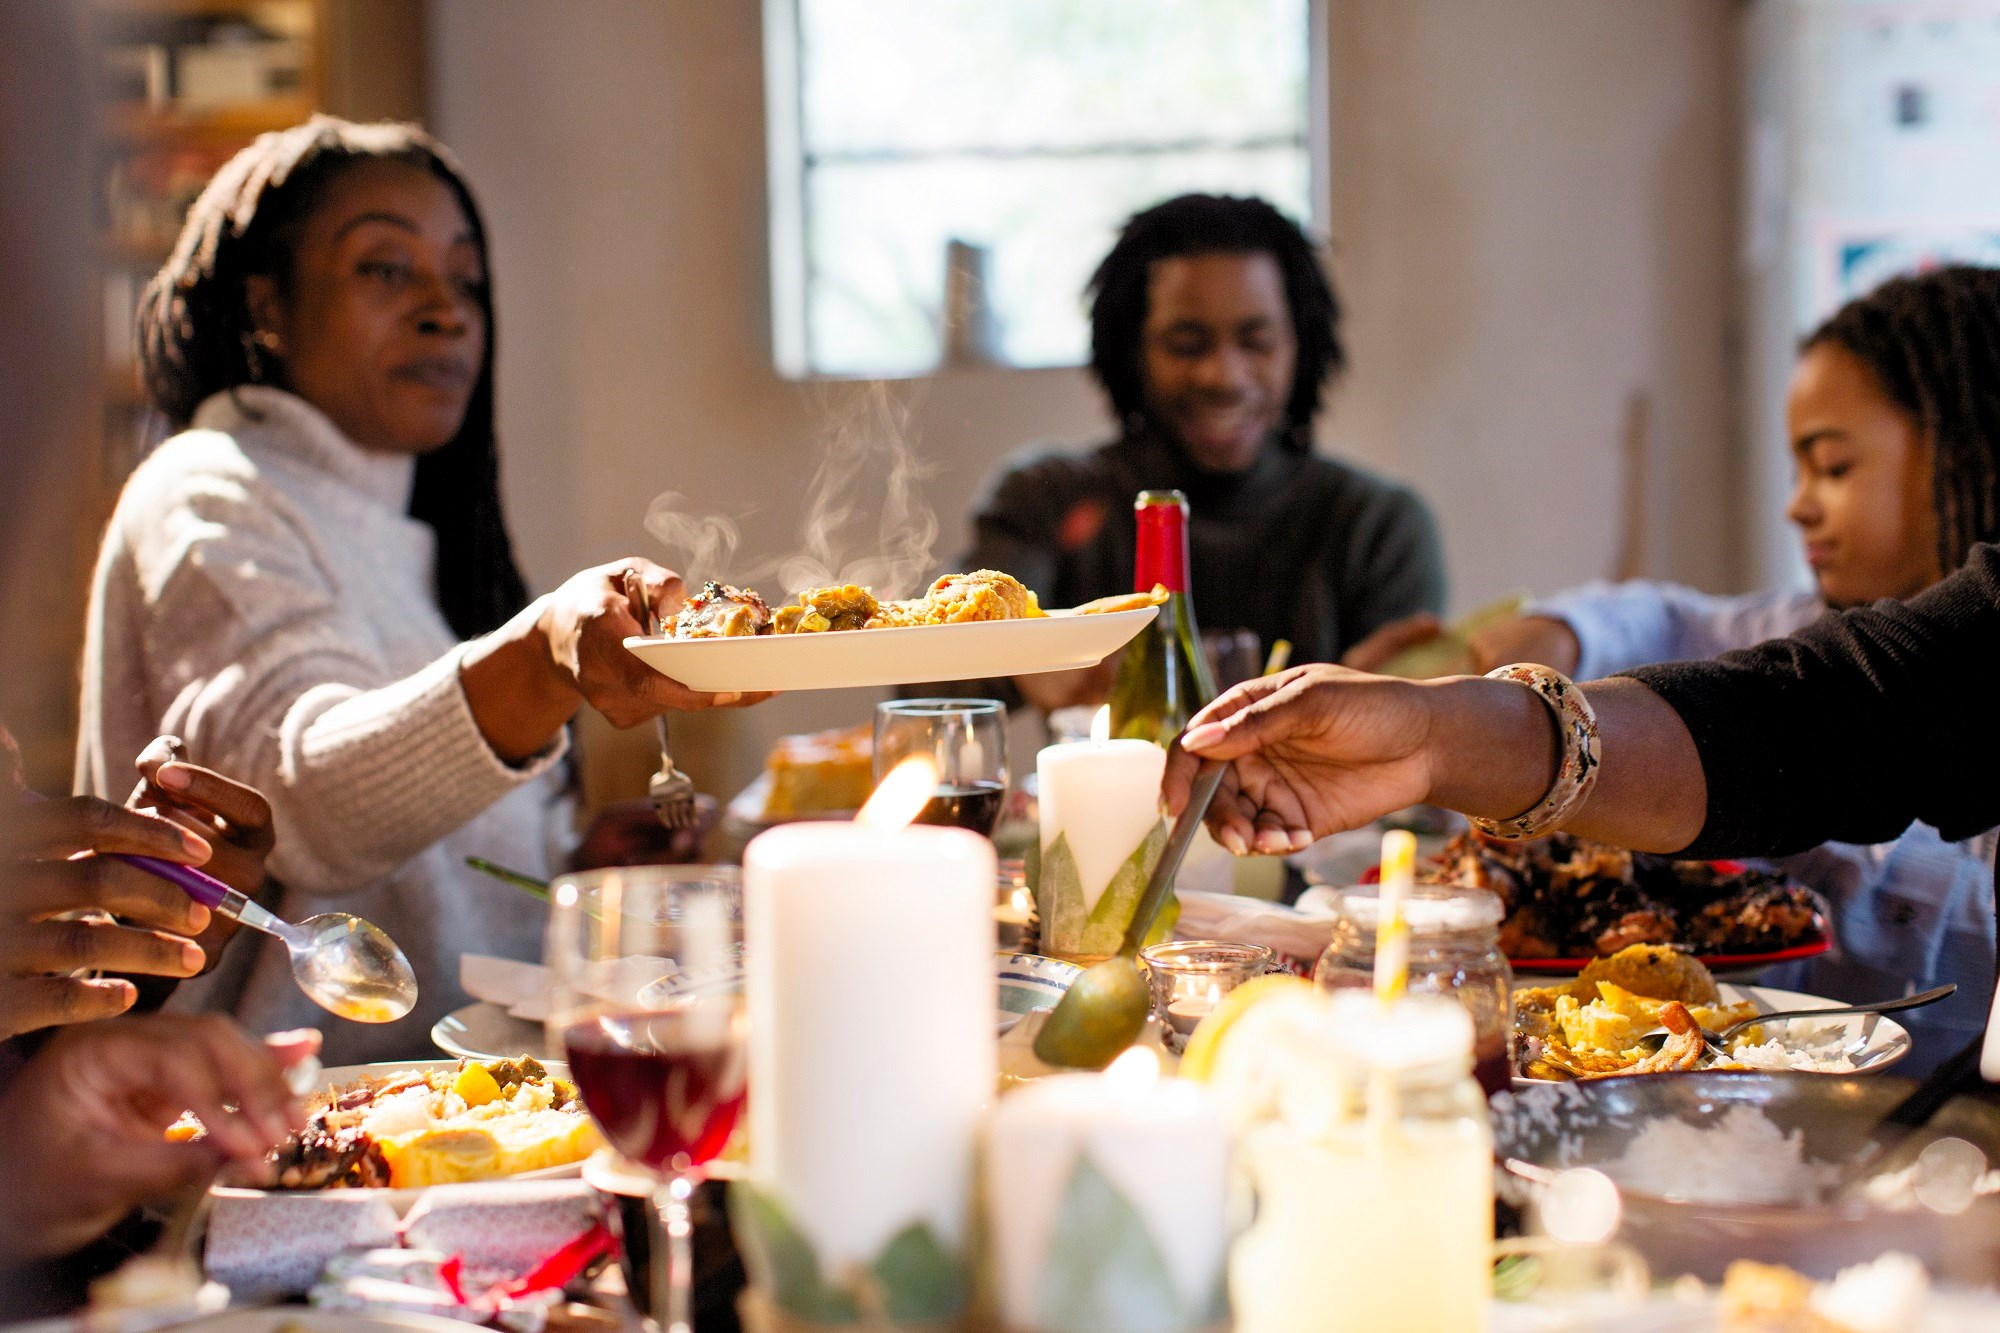 Among adolescents and young adults, family dinner frequency is associated with healthful dietary intake, regardless of family functioning.